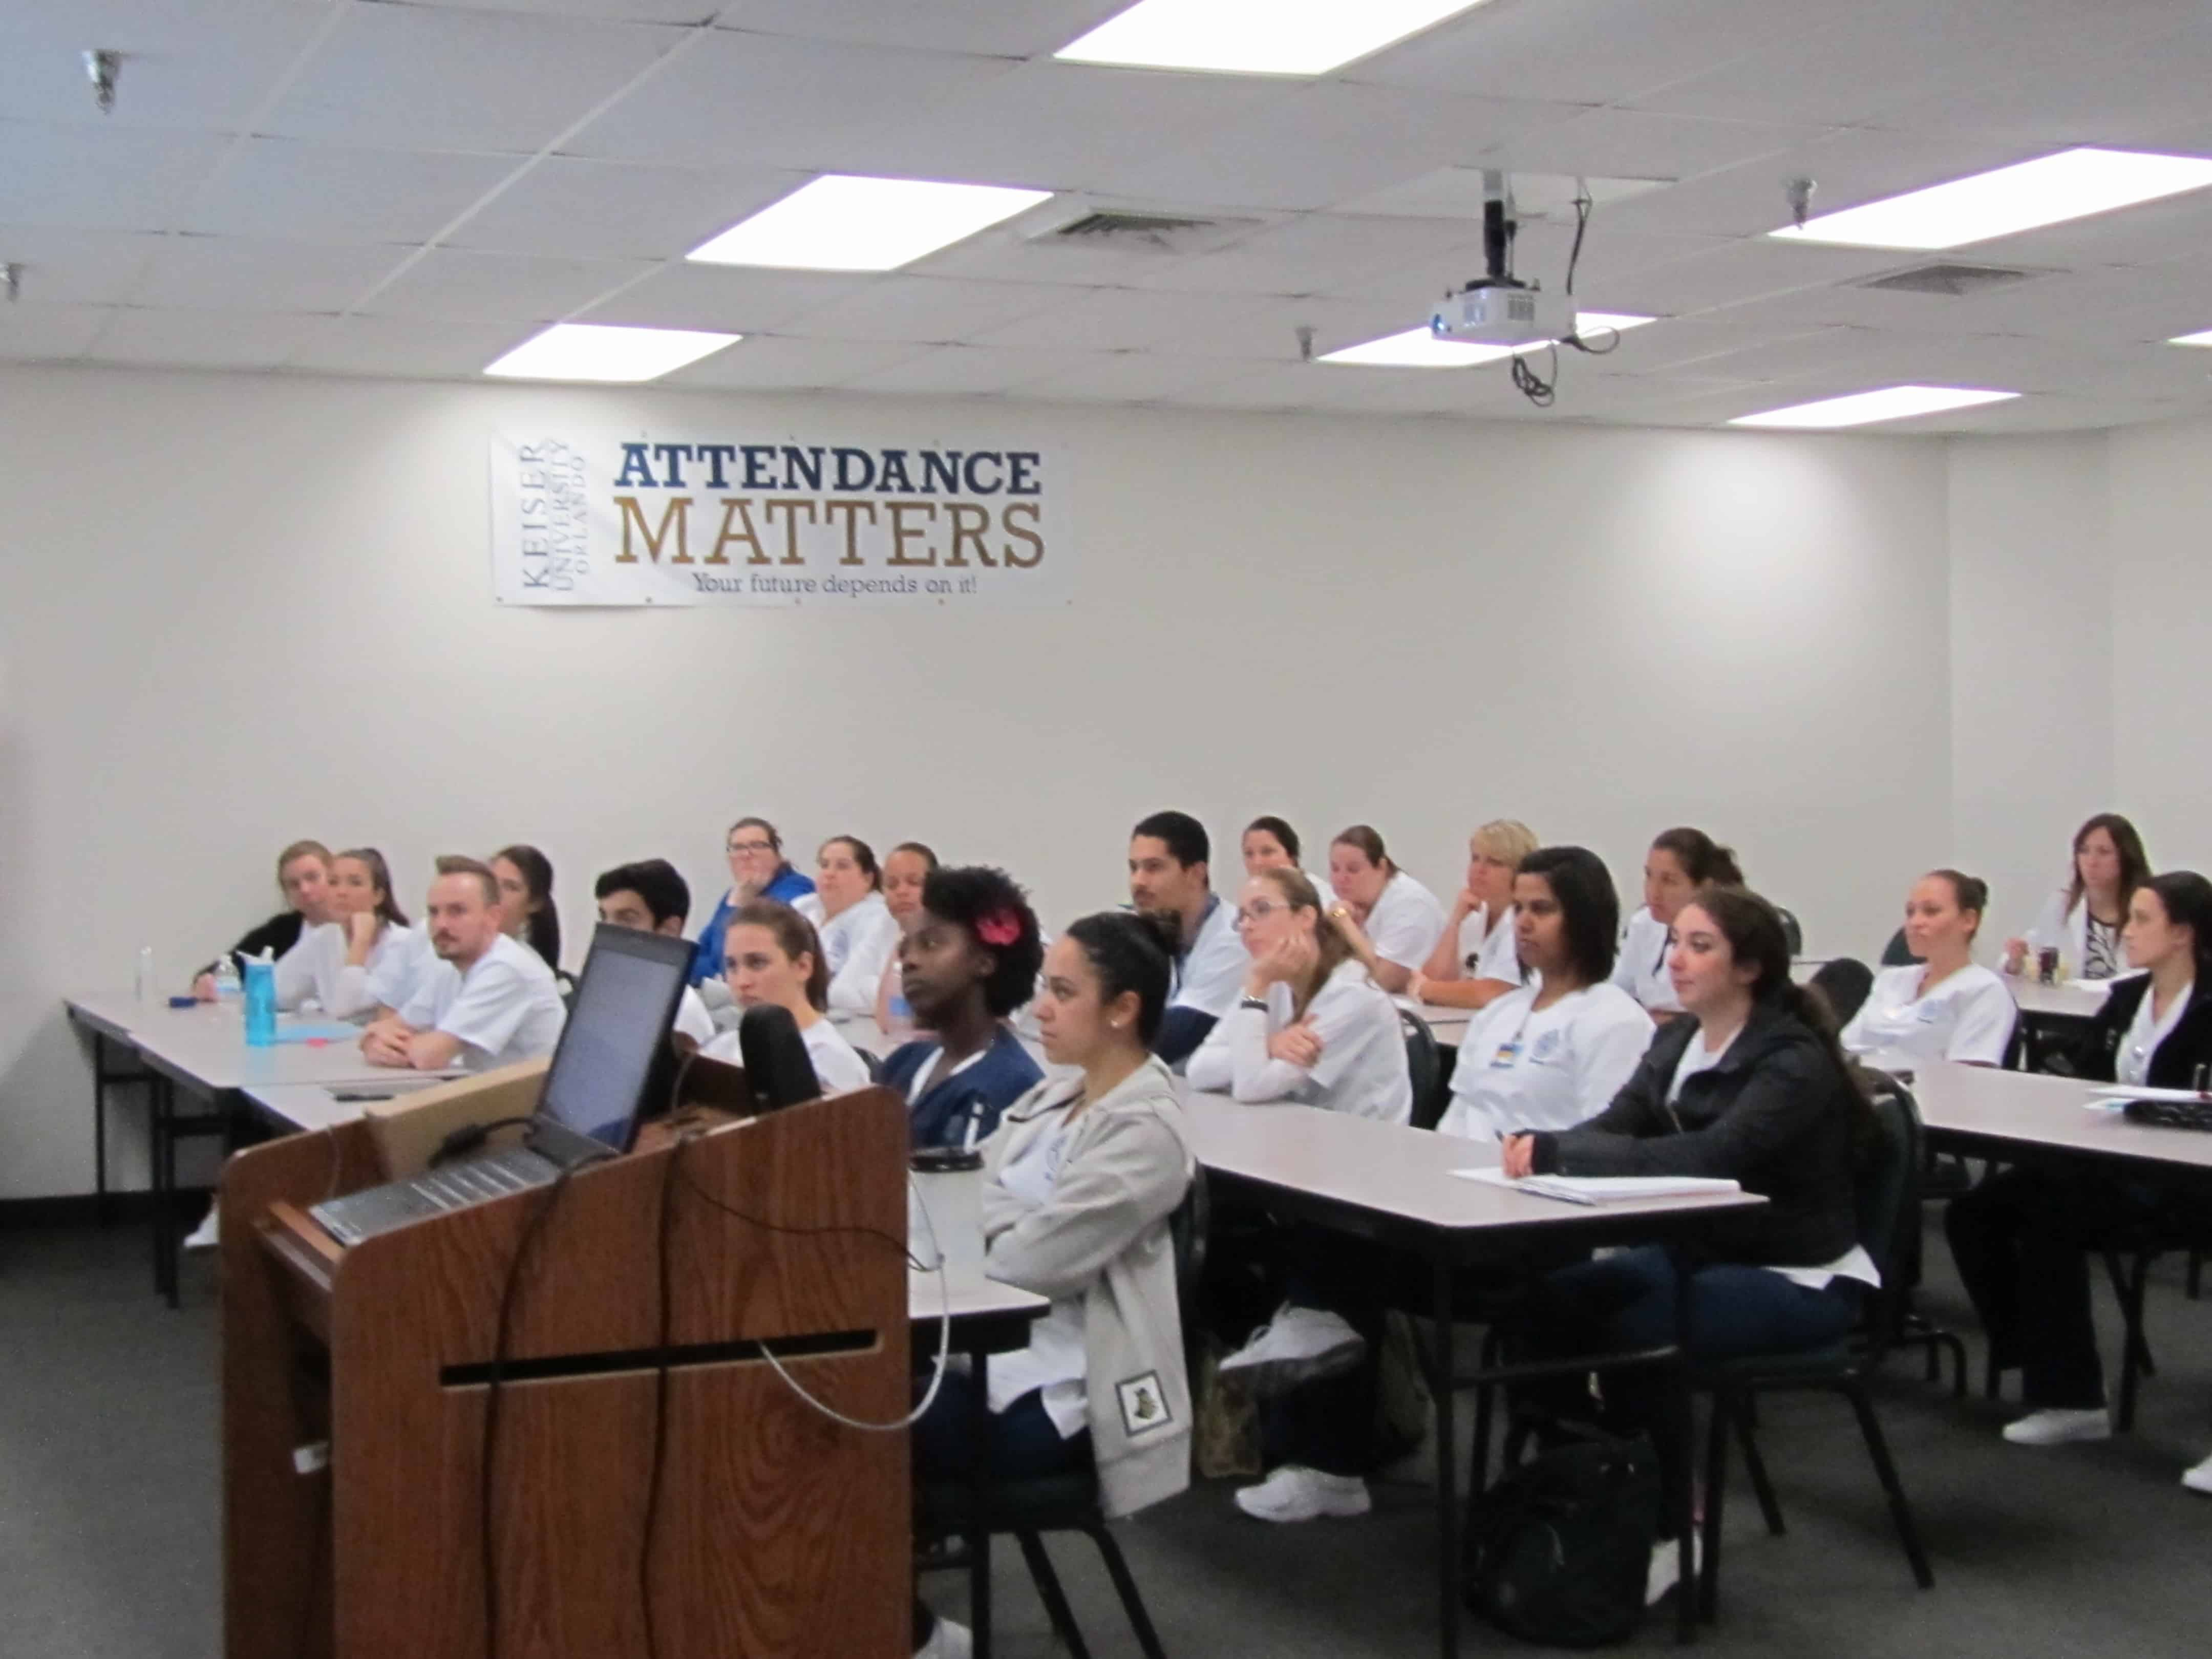 Orlando Nursing Students Learn About Stevens Johnson Syndrome from Guest Speakers